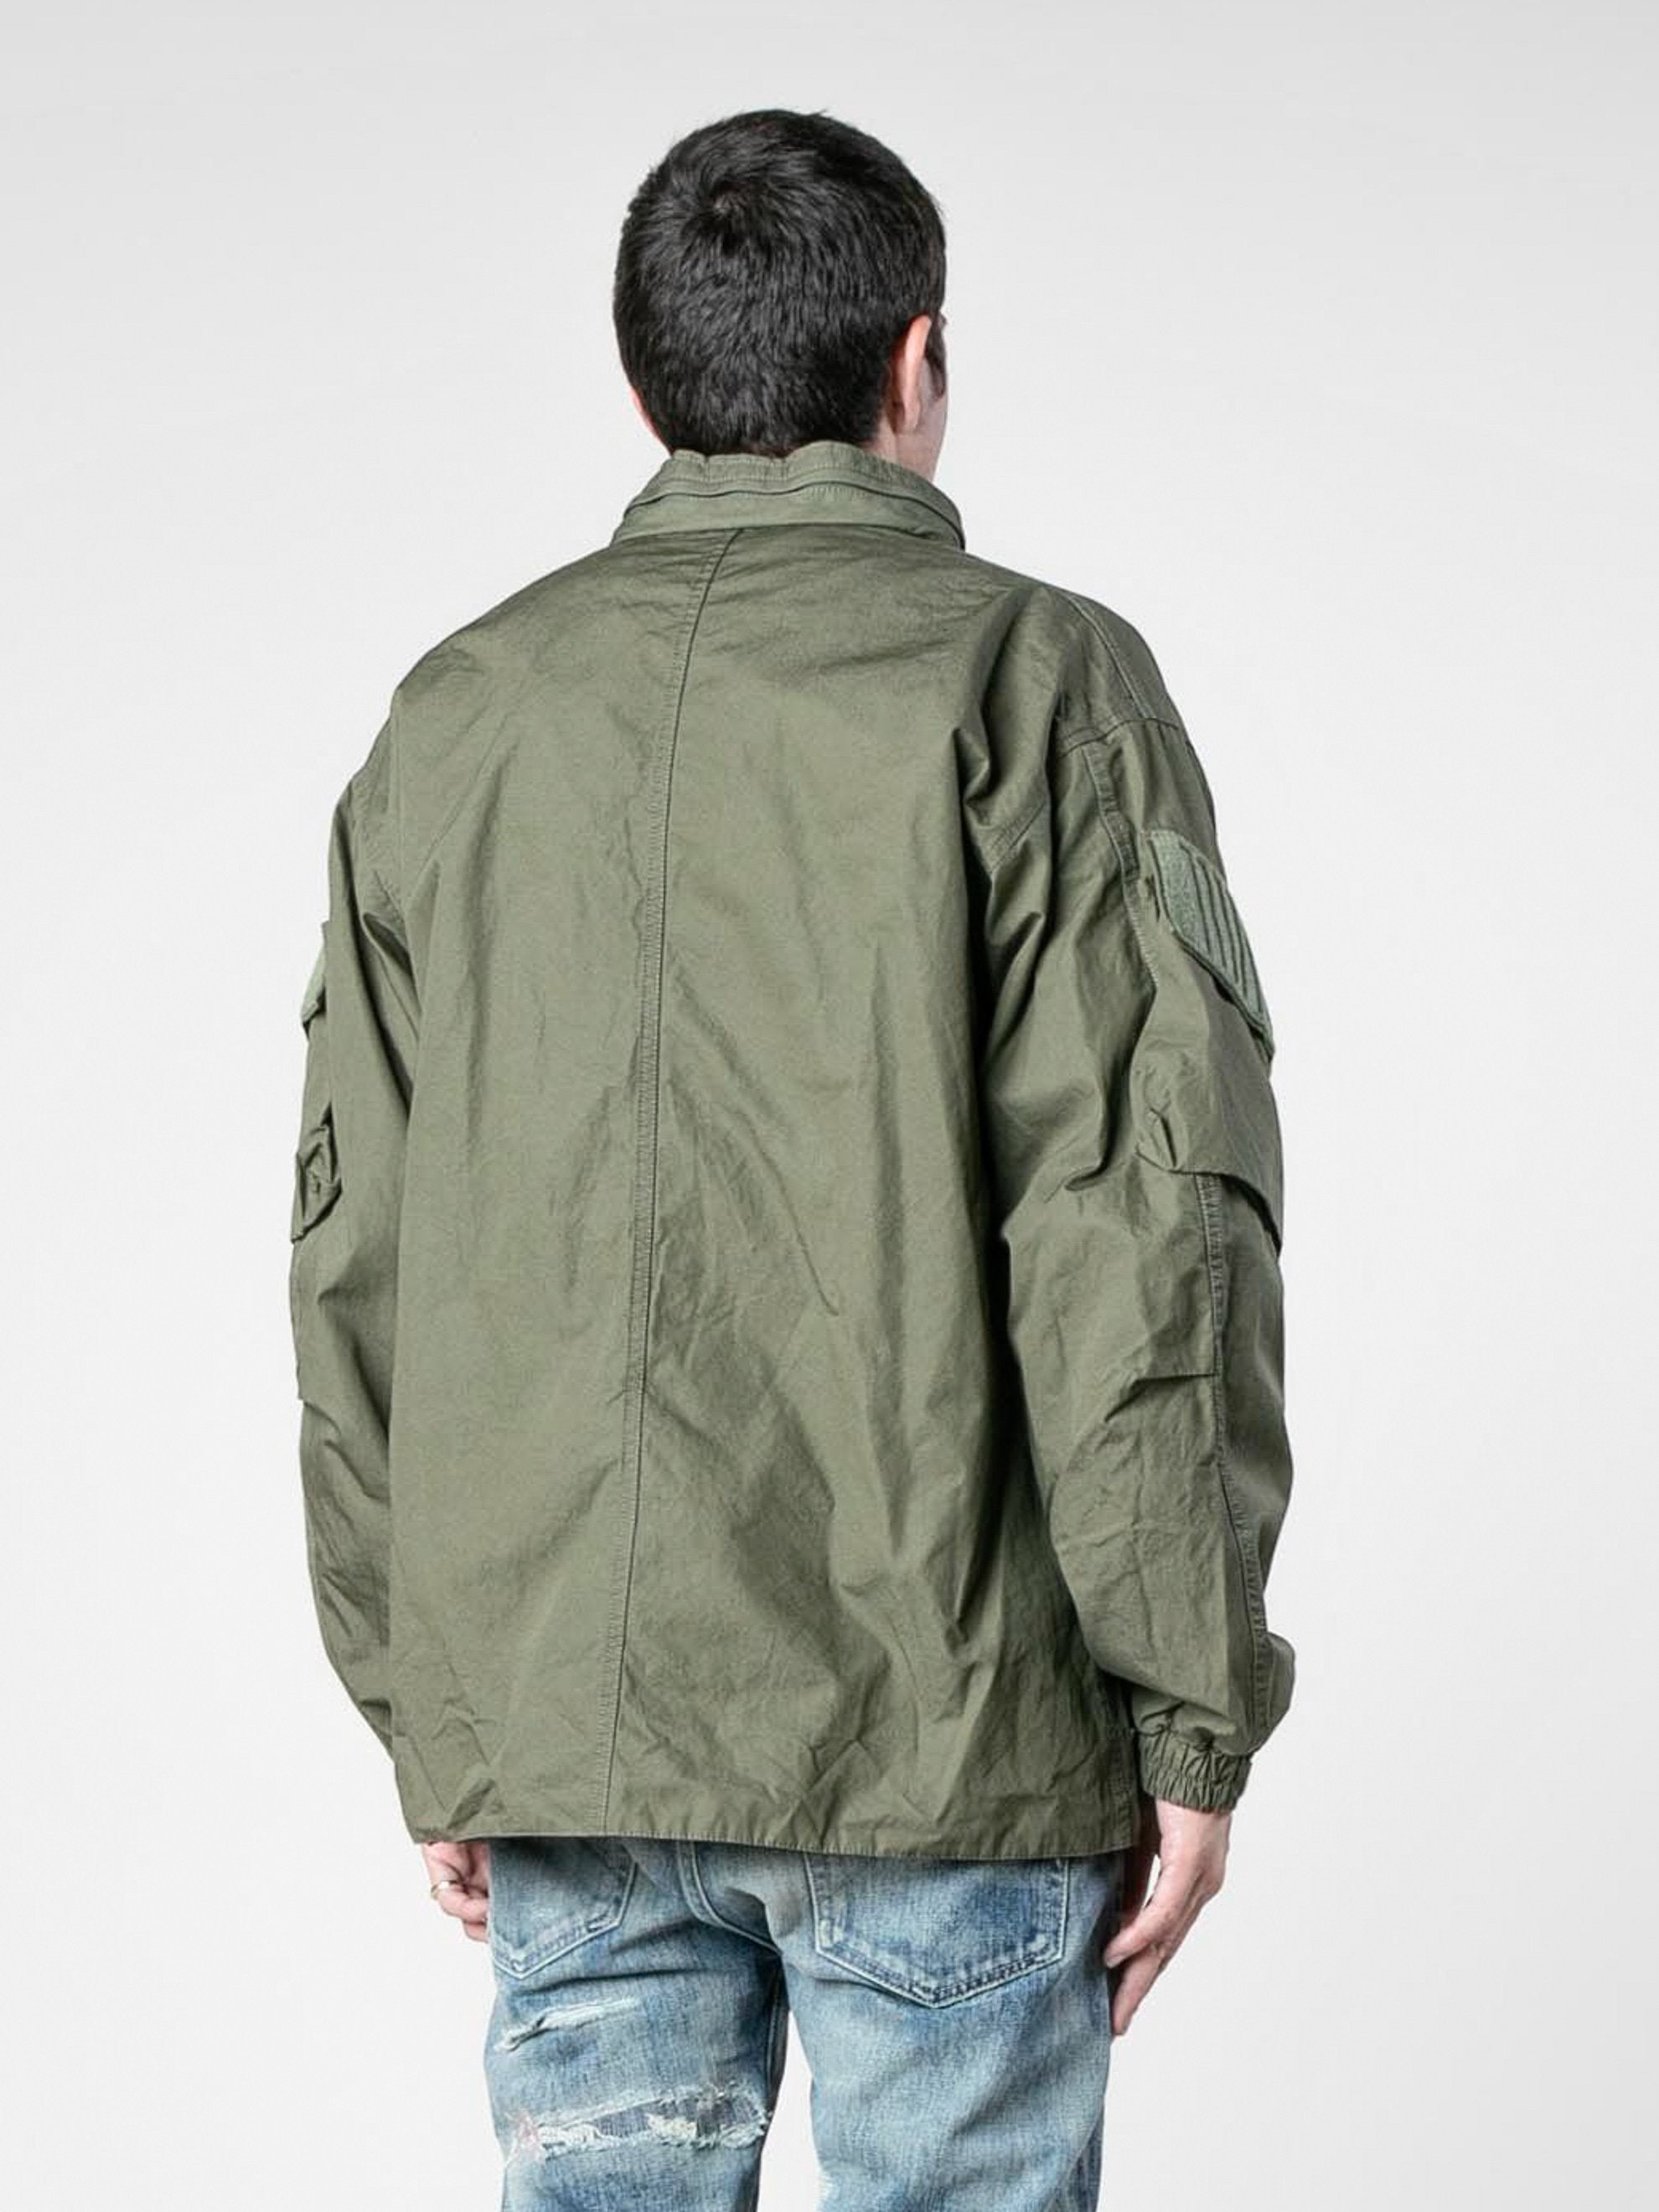 Olive Drab Modular / Jacket. Cotton. Weather 5